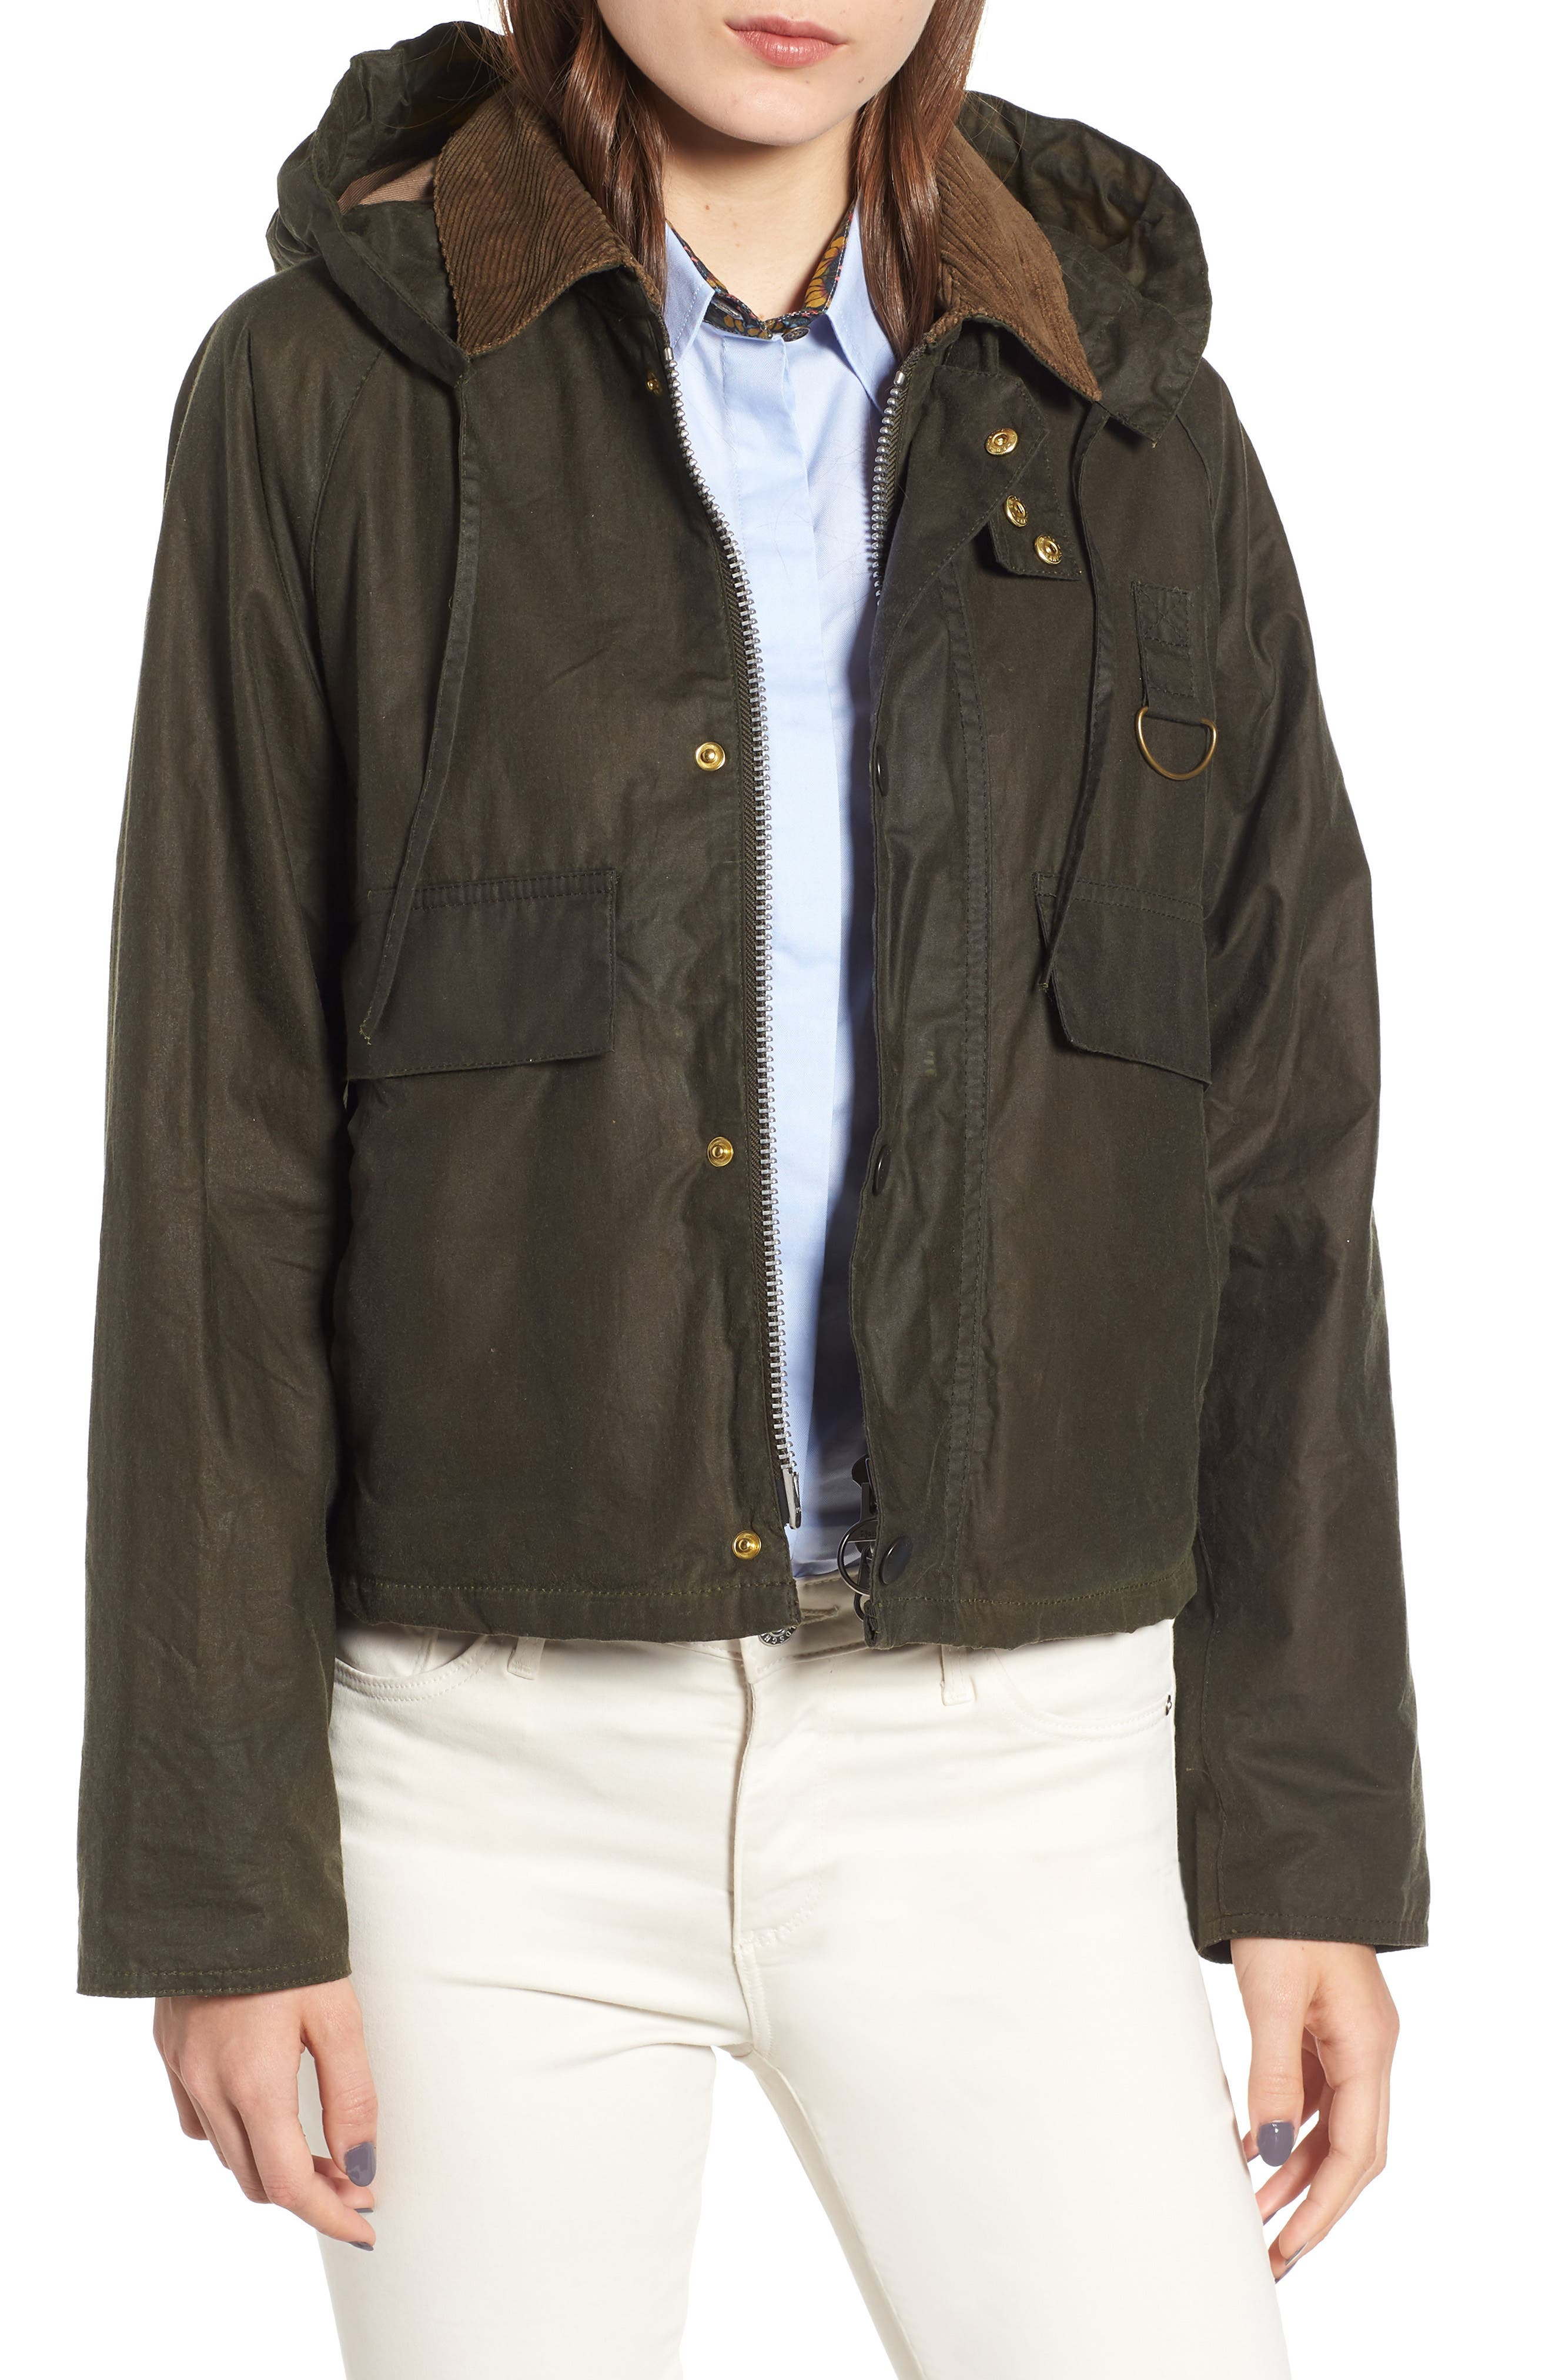 Barbour Margaret Howell Spey Water Resistant Waxed Cotton Jacket, US / 12 UK - Green